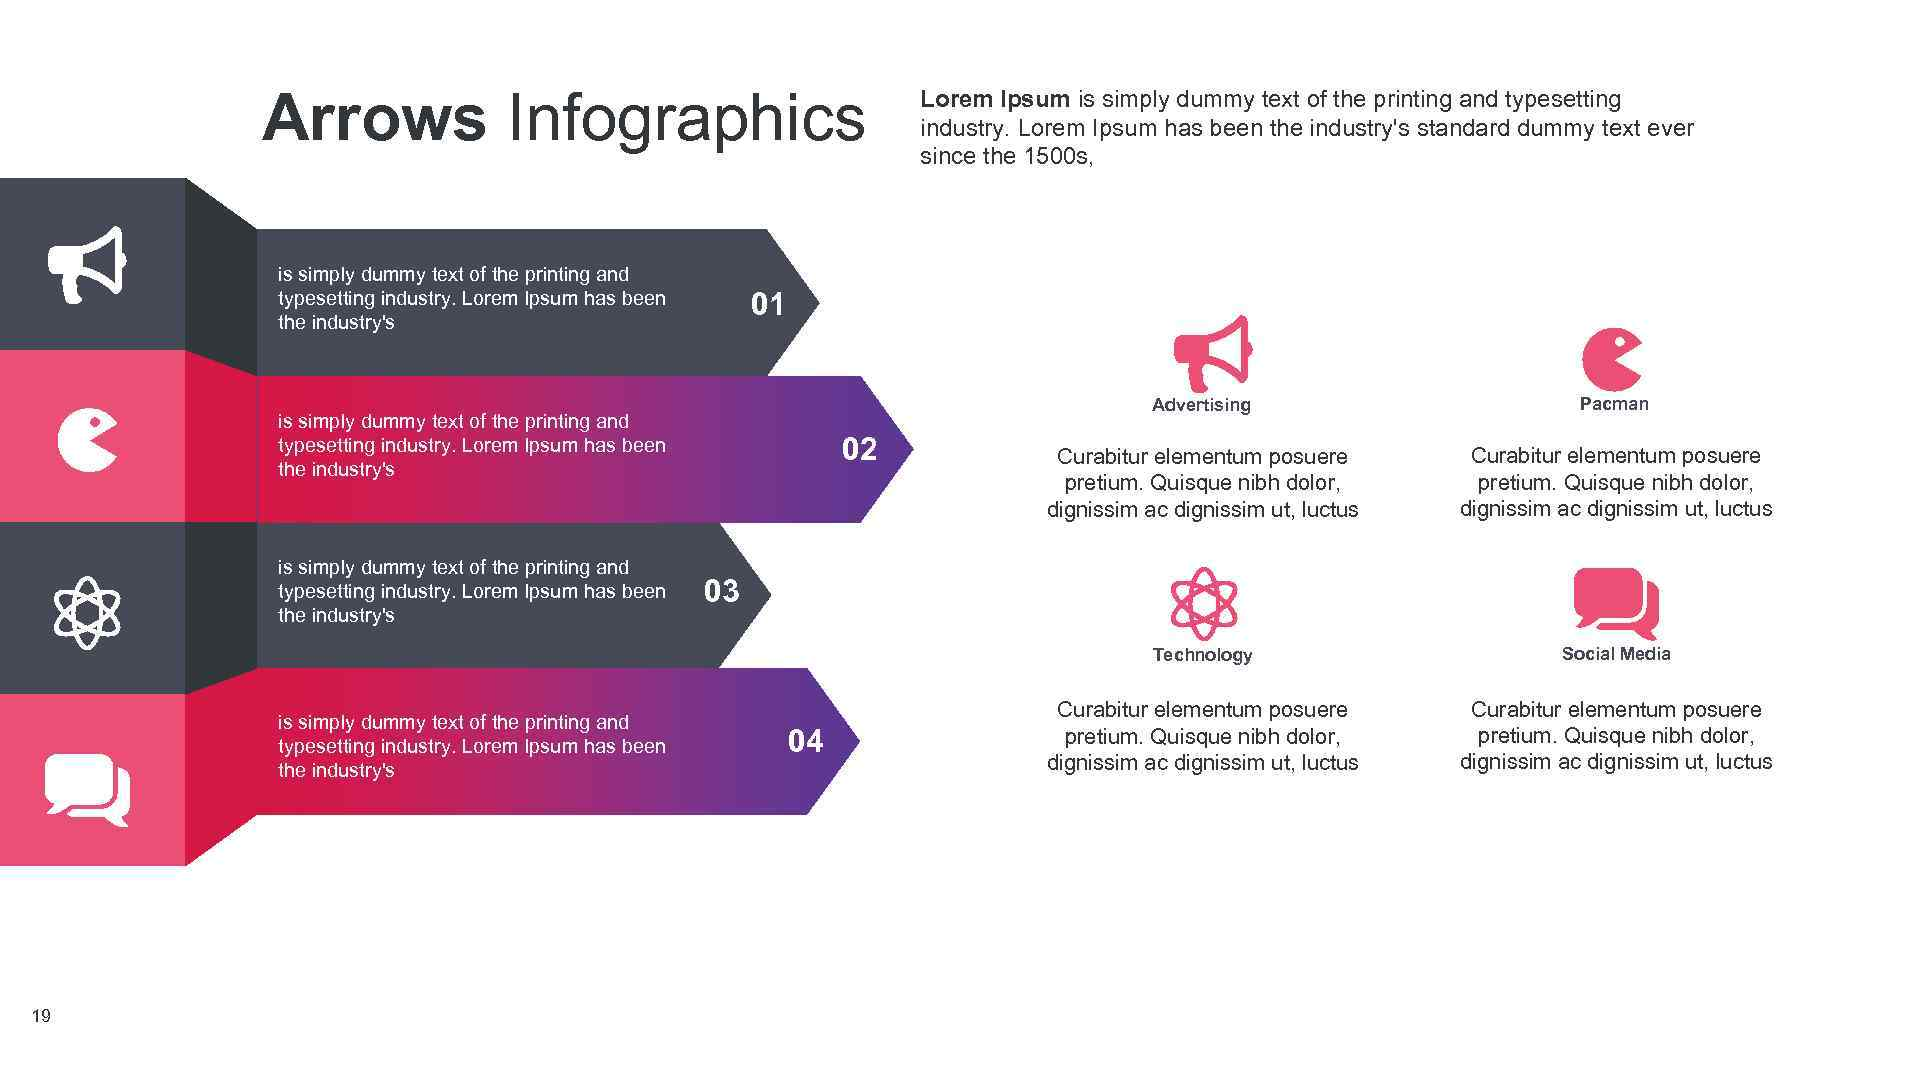 Arrows Infographics is simply dummy text of the printing and typesetting industry. Lorem Ipsum